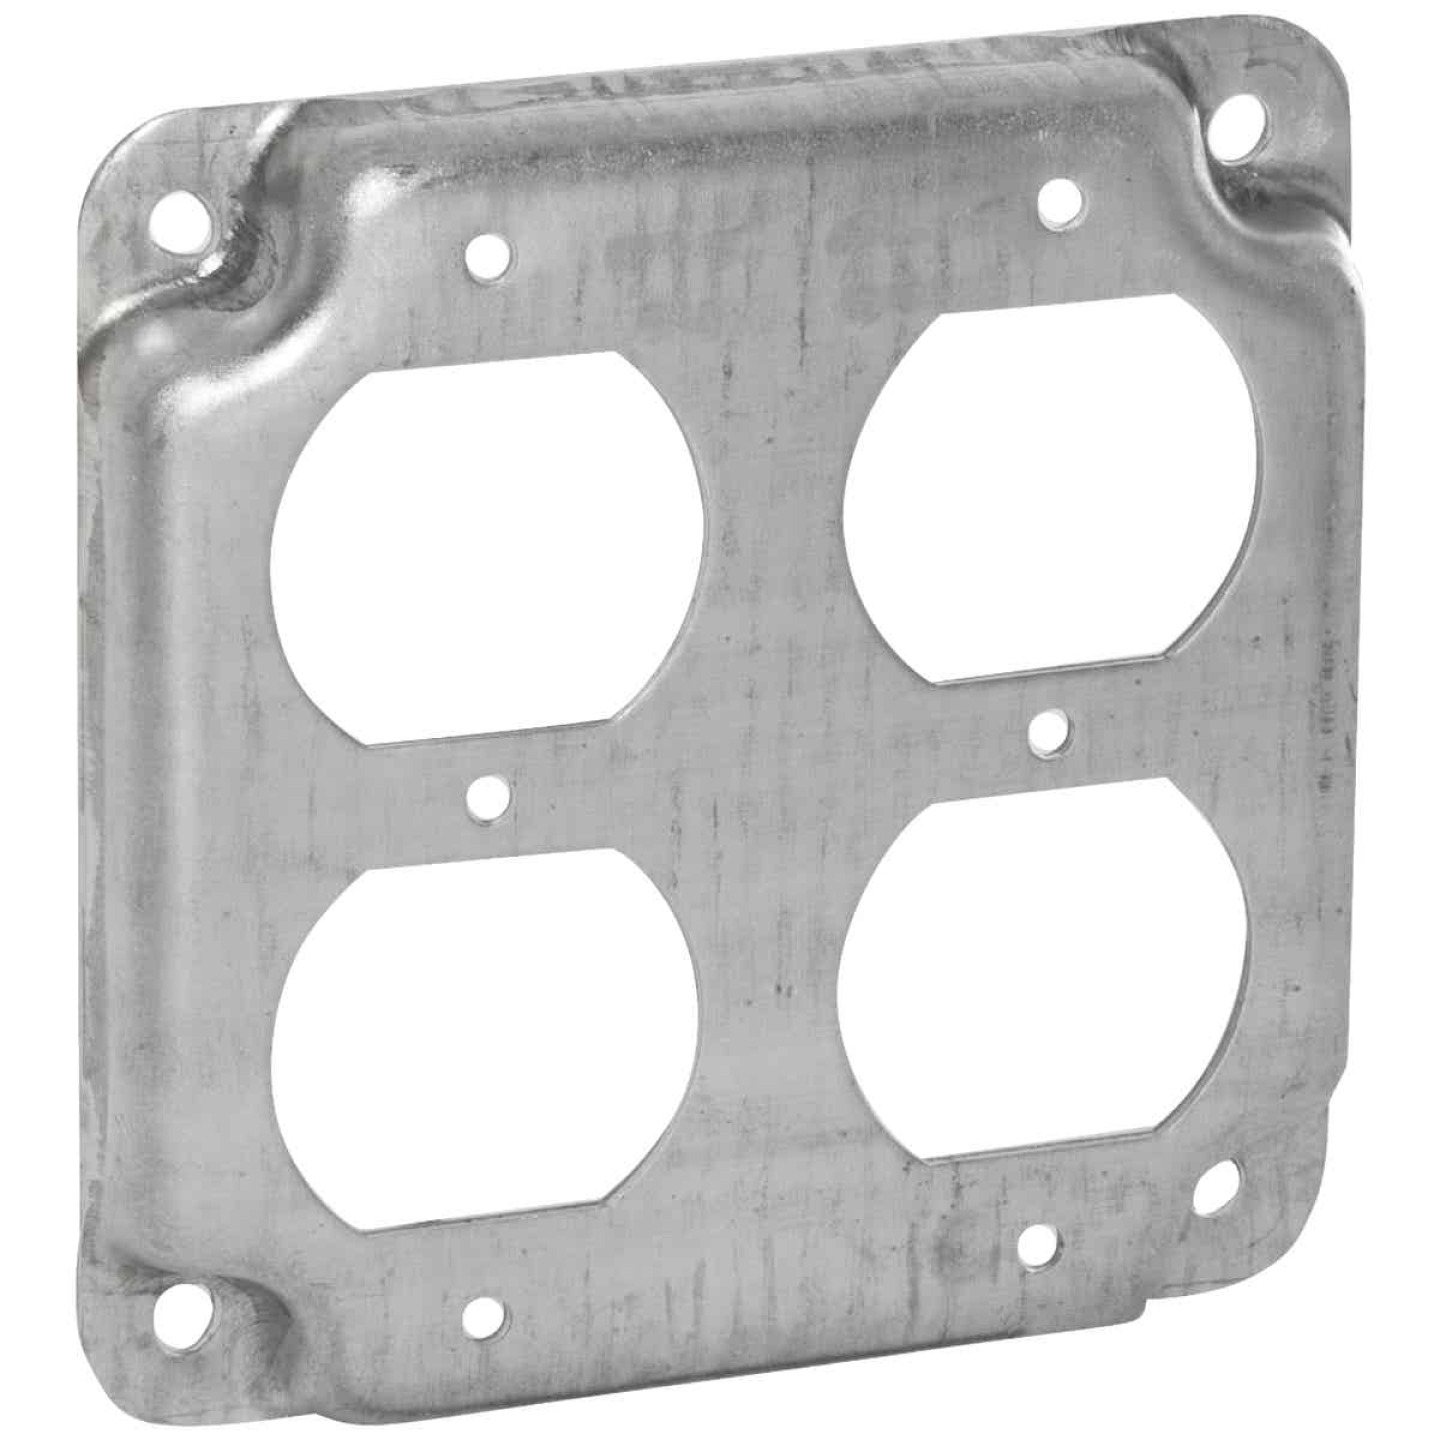 Raco 2-Duplex Receptacles 4 In. x 4 In. Square Device Cover Image 1